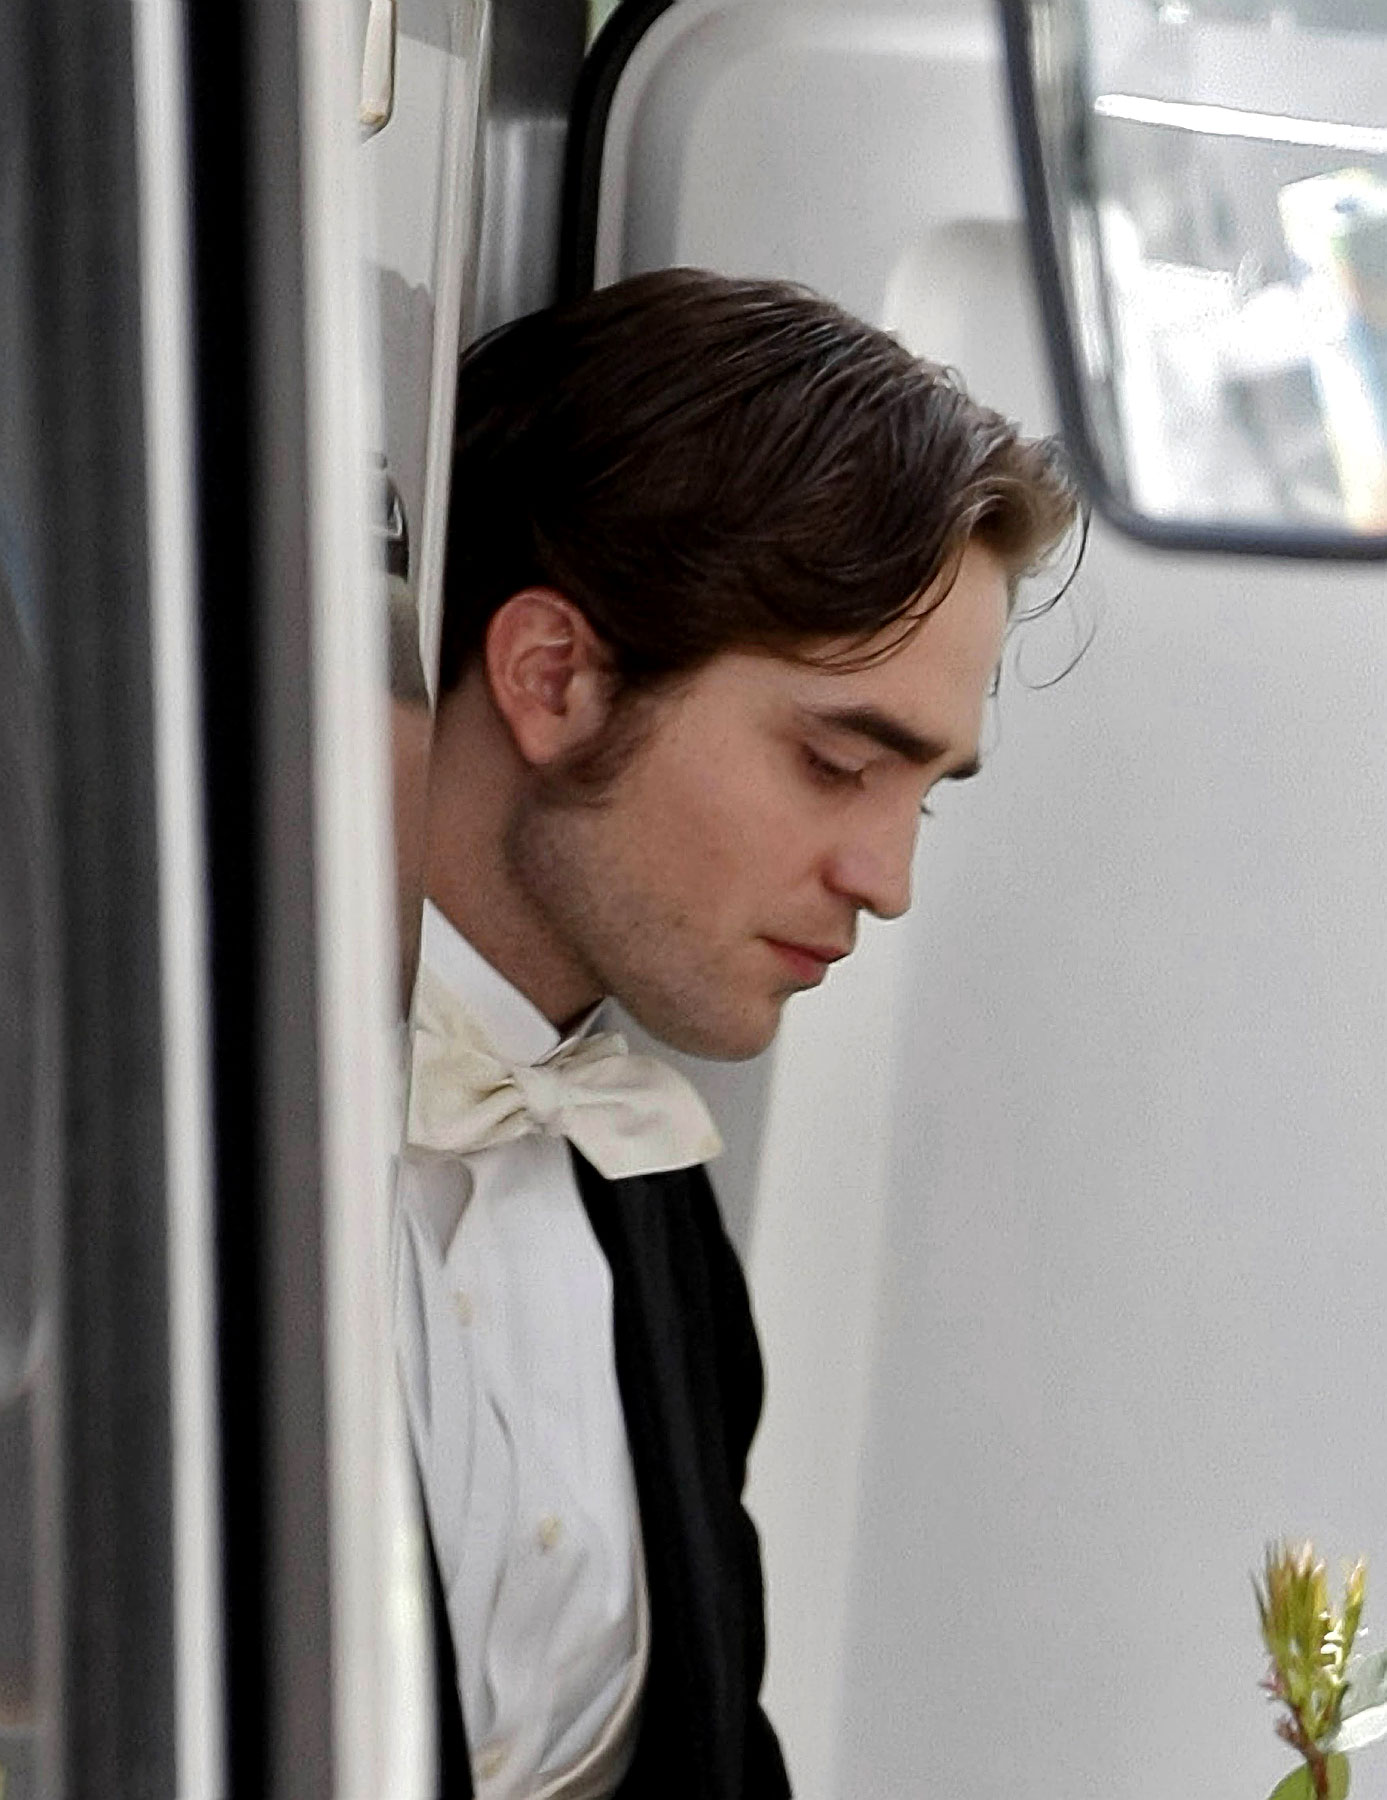 Robert Pattinson Rubs His Awesome Sideburns In Our Faces on 'Bel Ami' Set (PHOTOS)